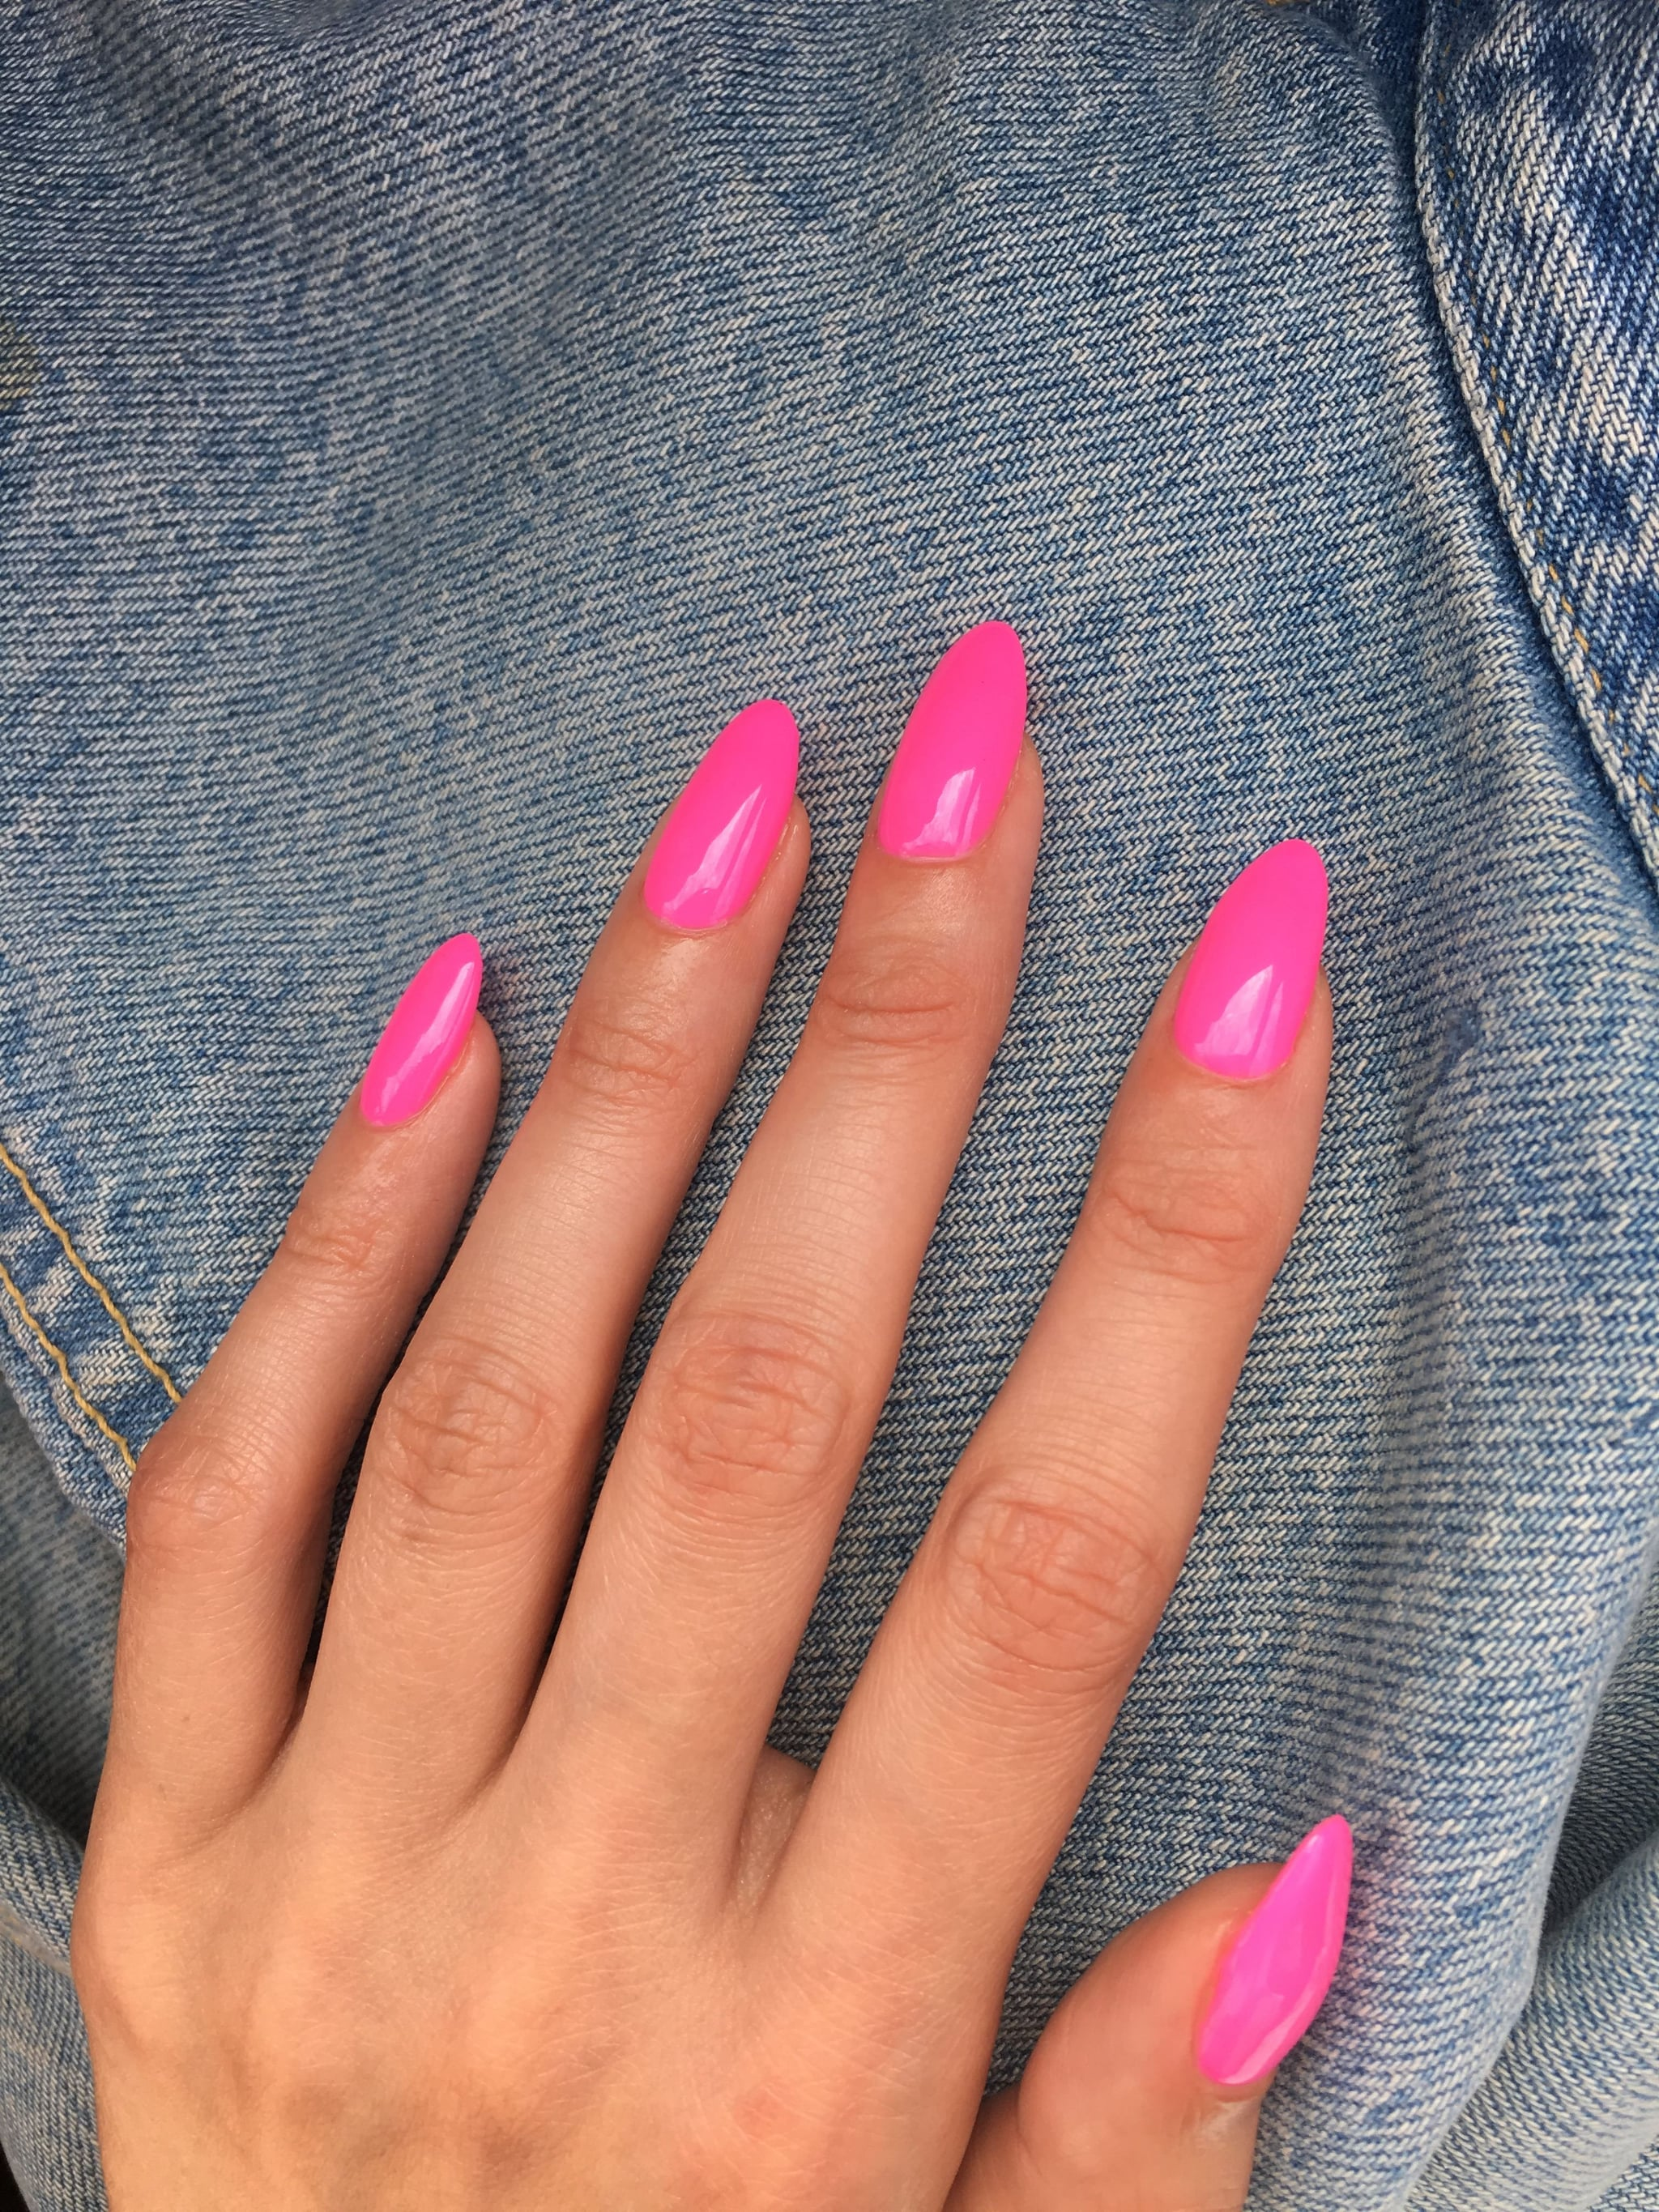 How To Grow Long Nails